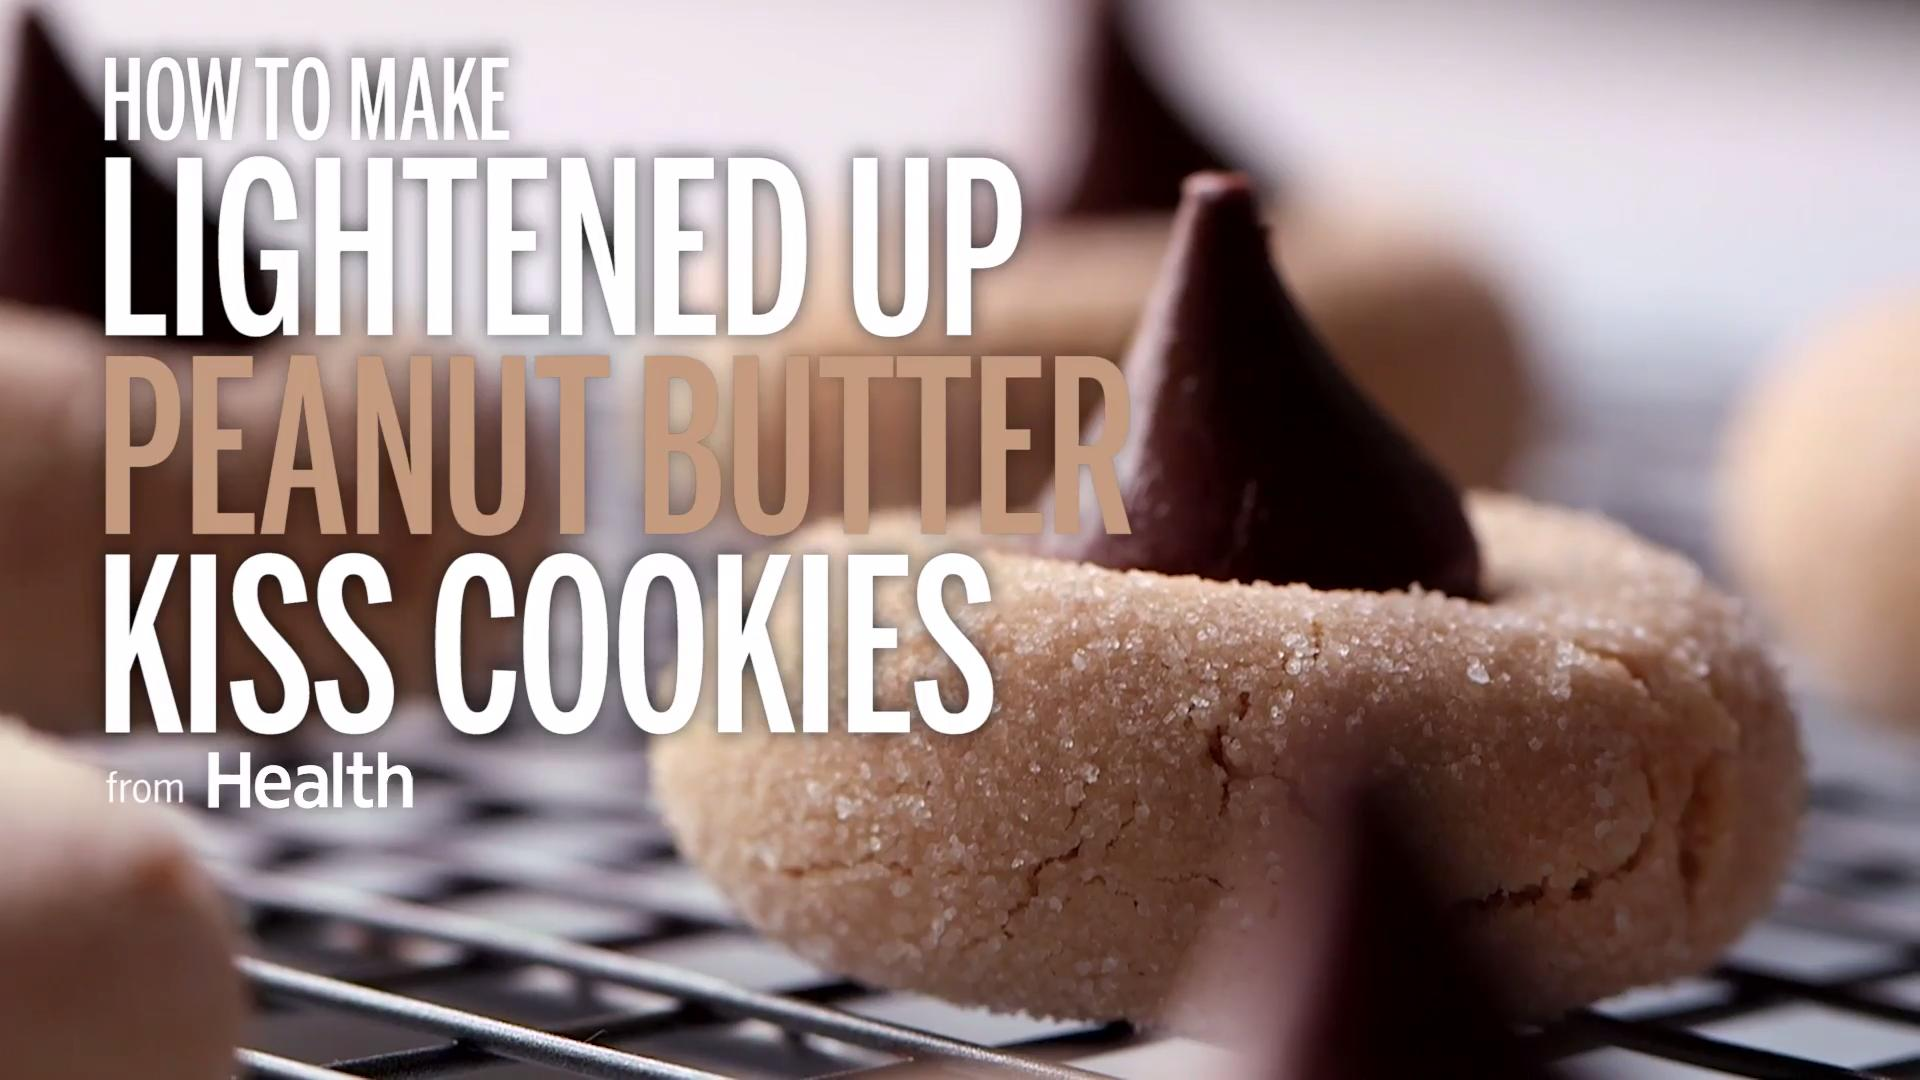 How to Make Lightened Up Peanut Butter Kiss Cookies